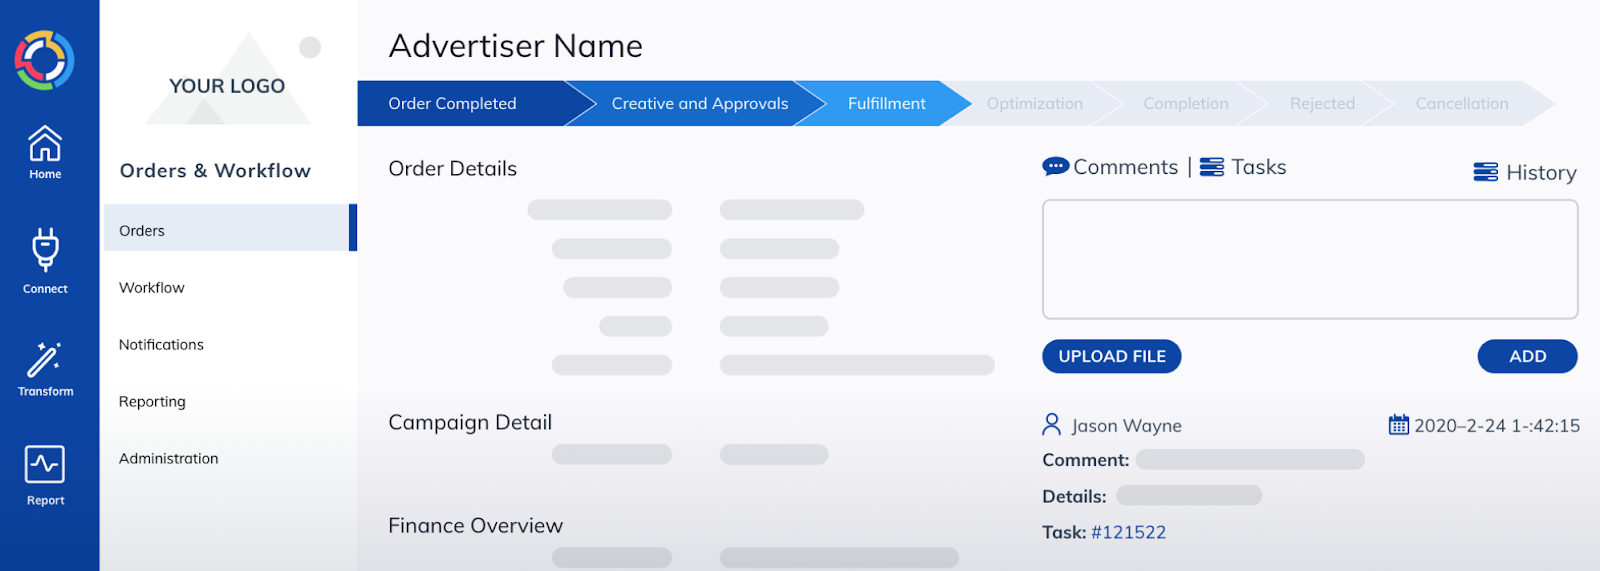 TapClicks enterprise reporting tool includes orders and workflow